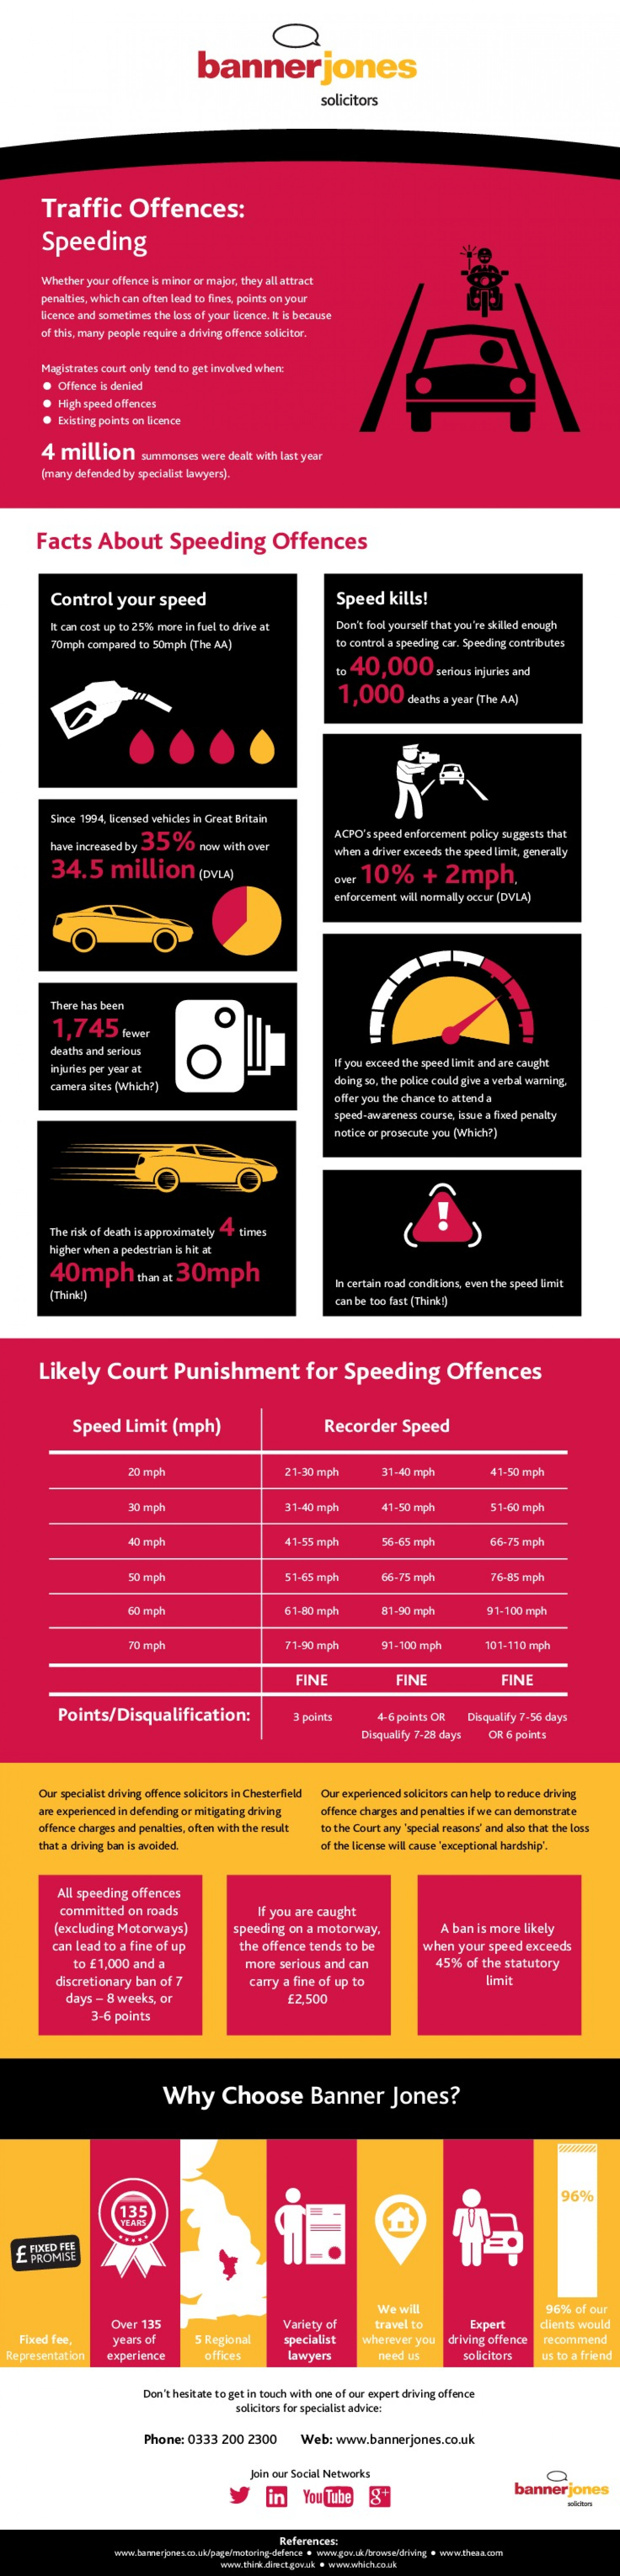 Traffic Offences: Speeding Infographic